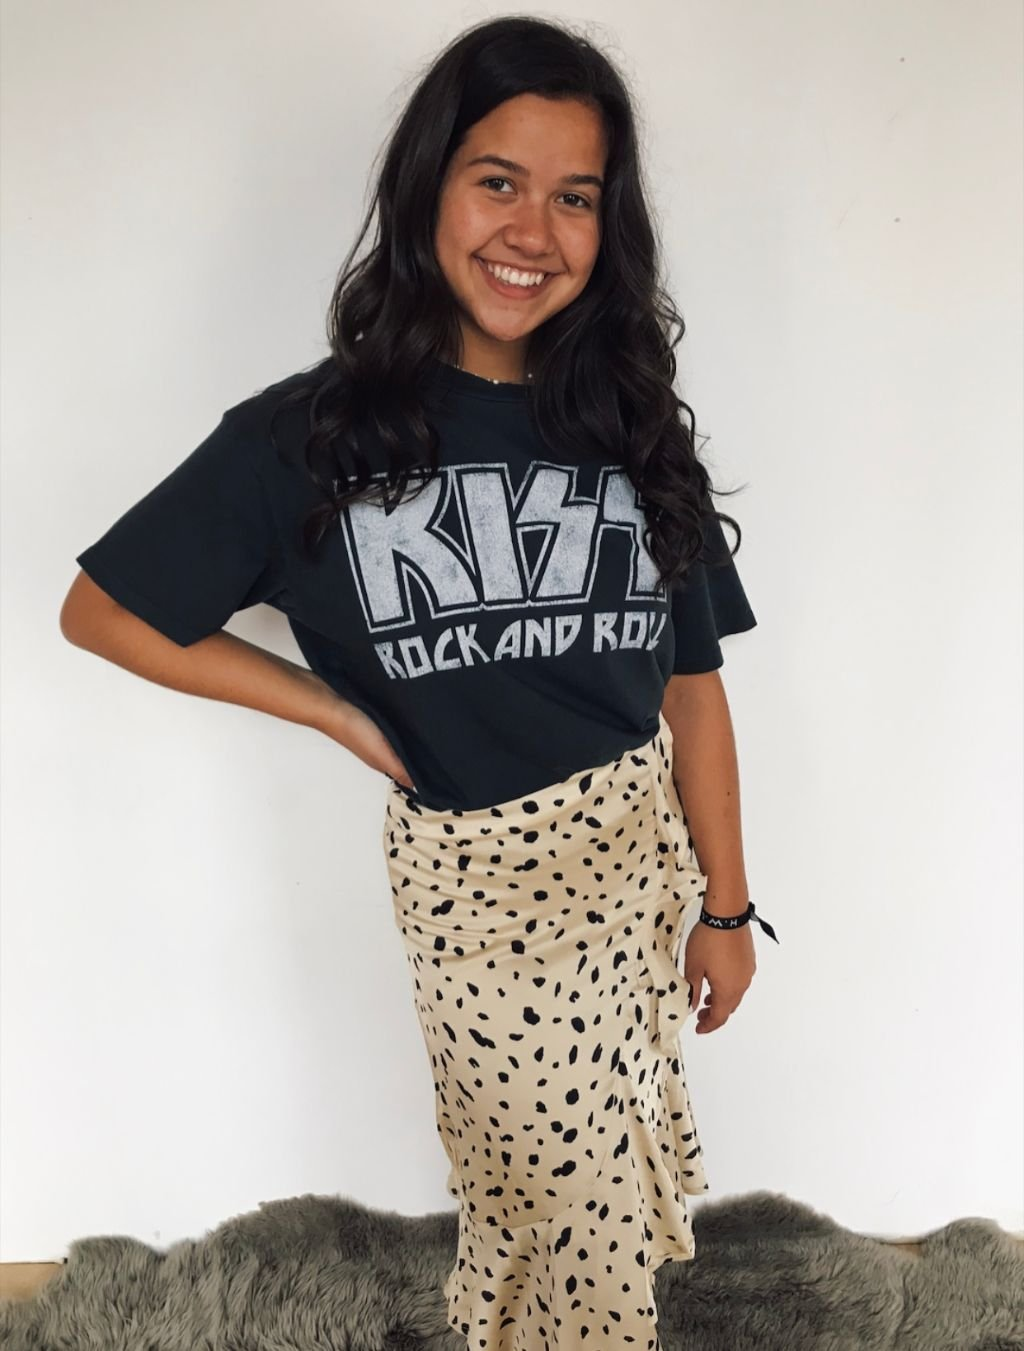 Daydreamer Kiss Rock and Roll Tee